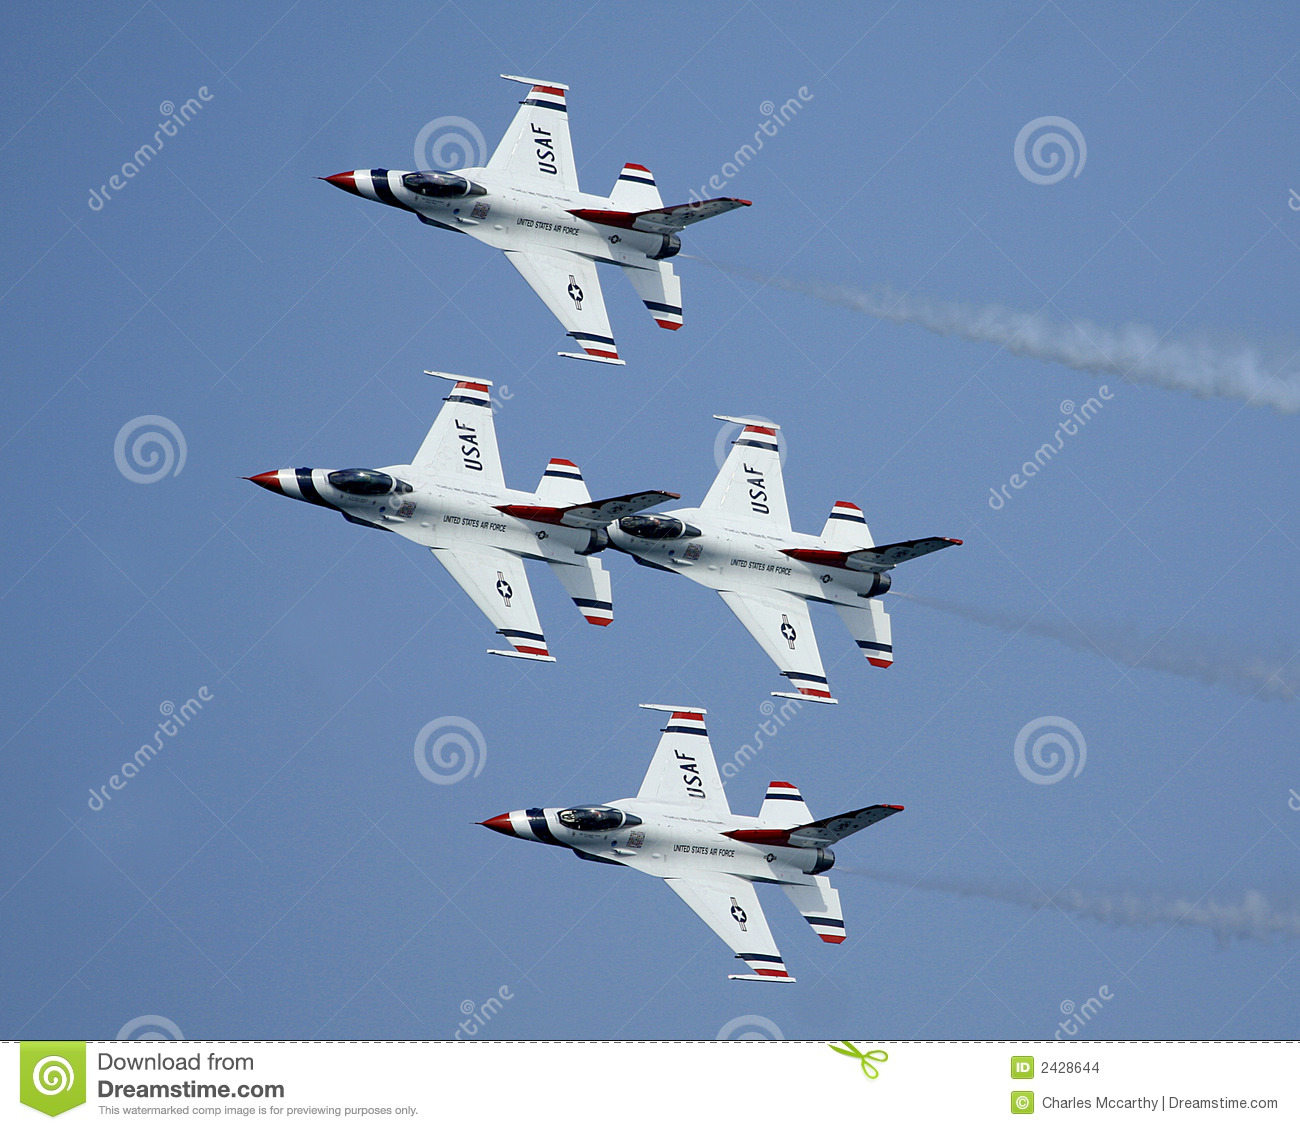 Thunderbirds do U.S.A.F.